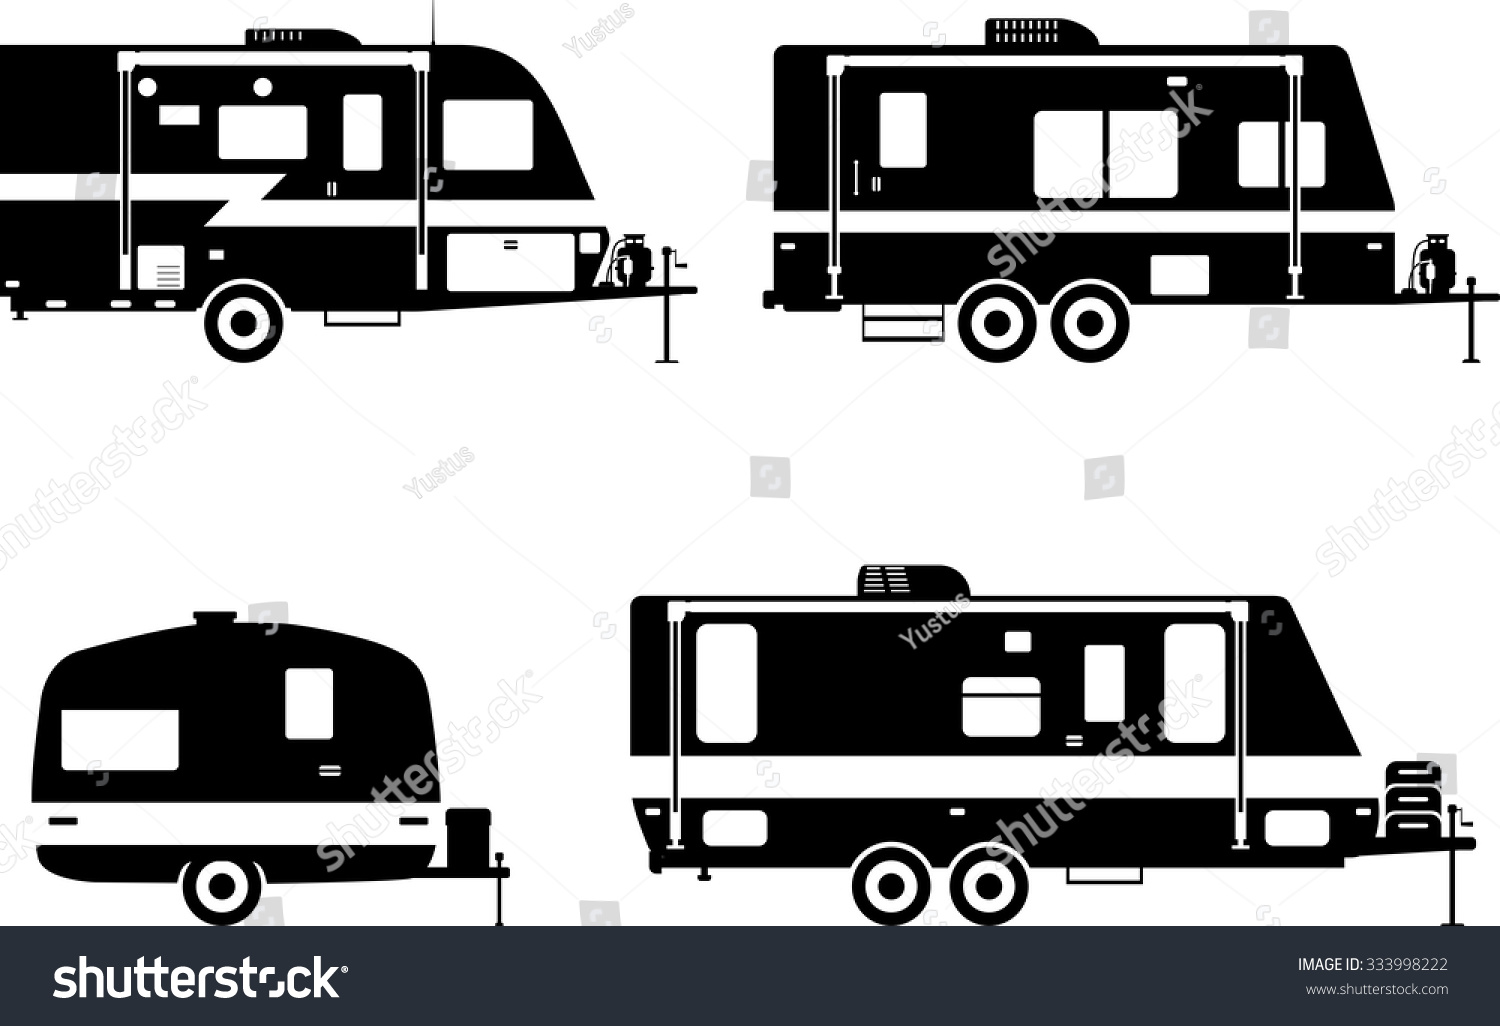 New Rv Silhouette American Camper Van Or Rv Show More This Great Custom